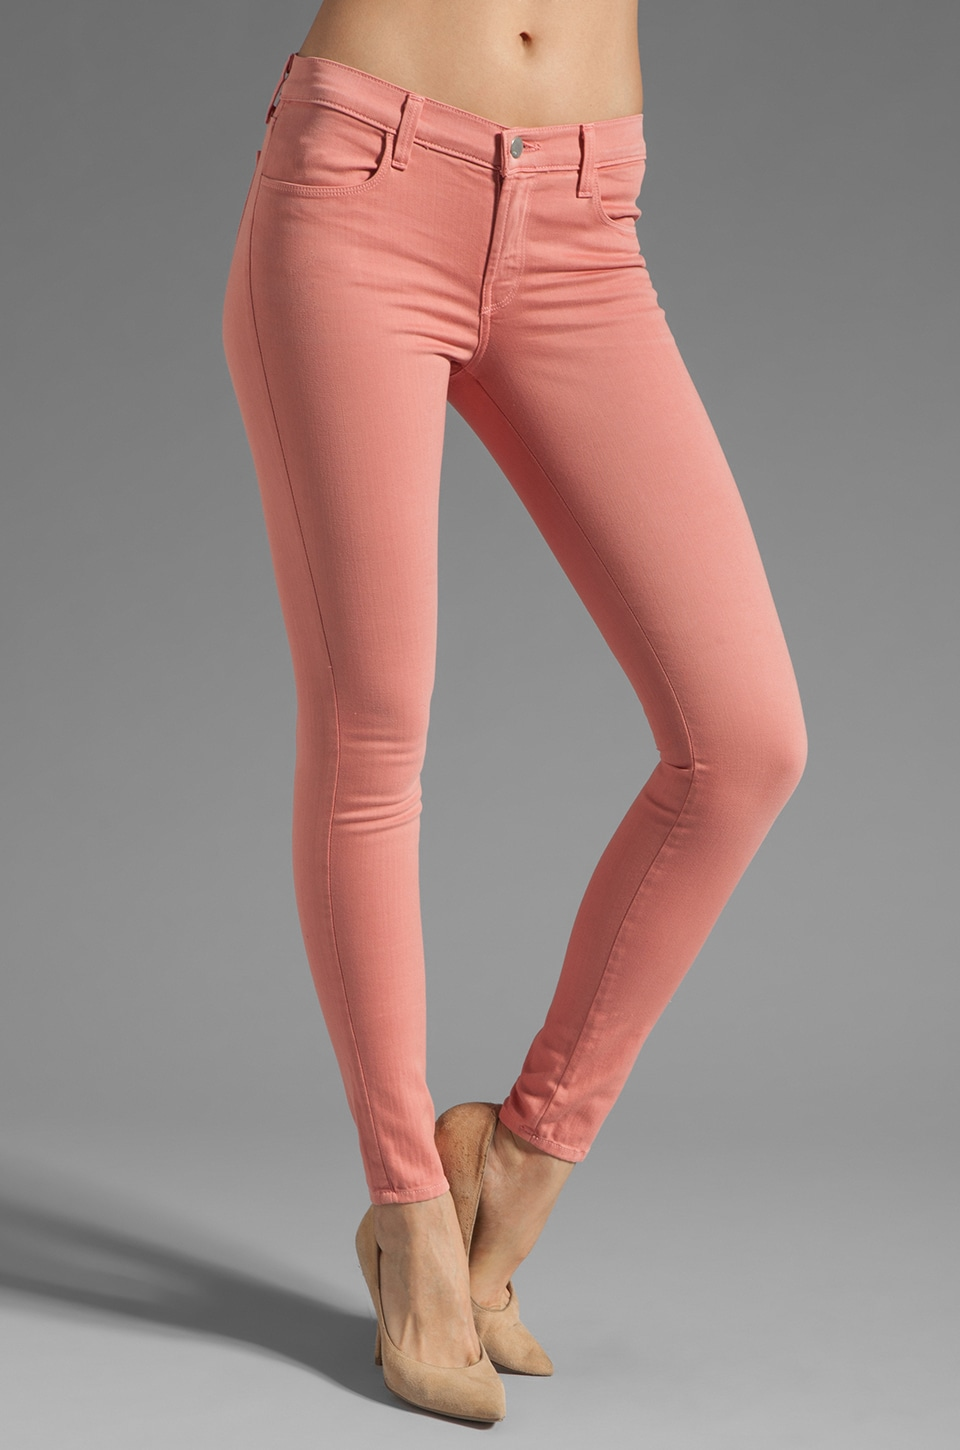 J Brand Super Skinny in Washed Coho